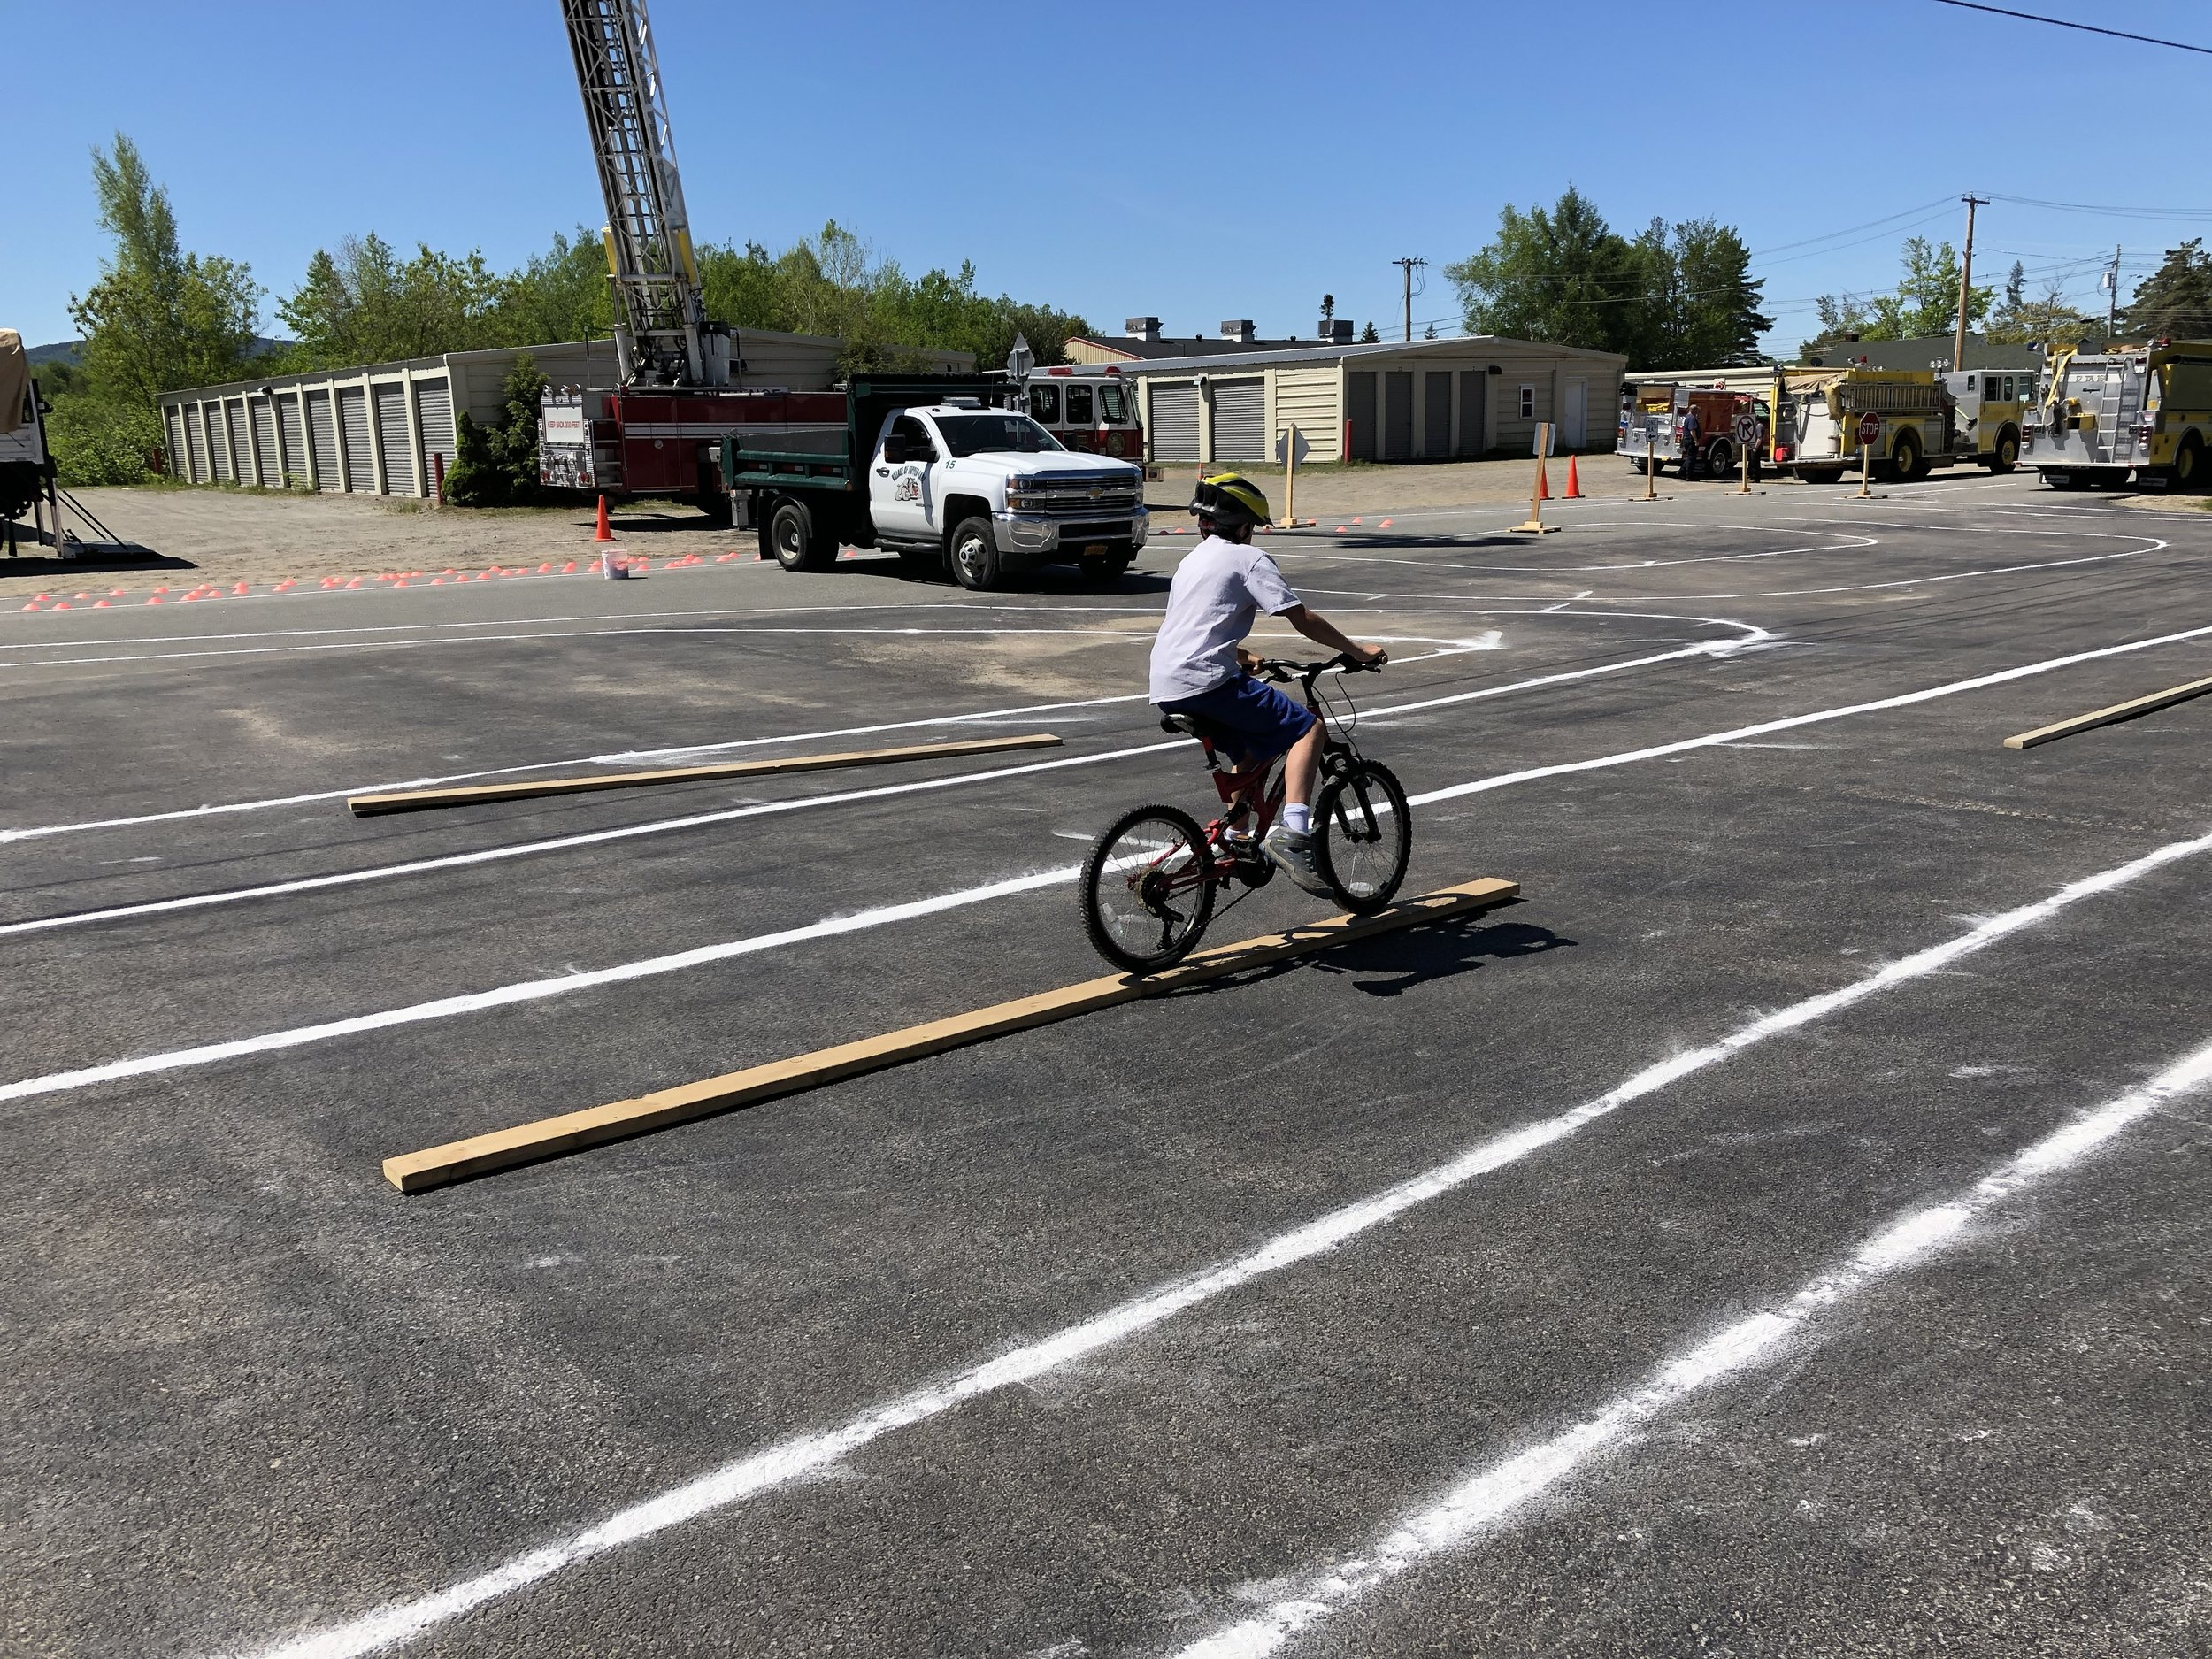 Navigating a ride across a two by six board was one of the balance skills at the event.